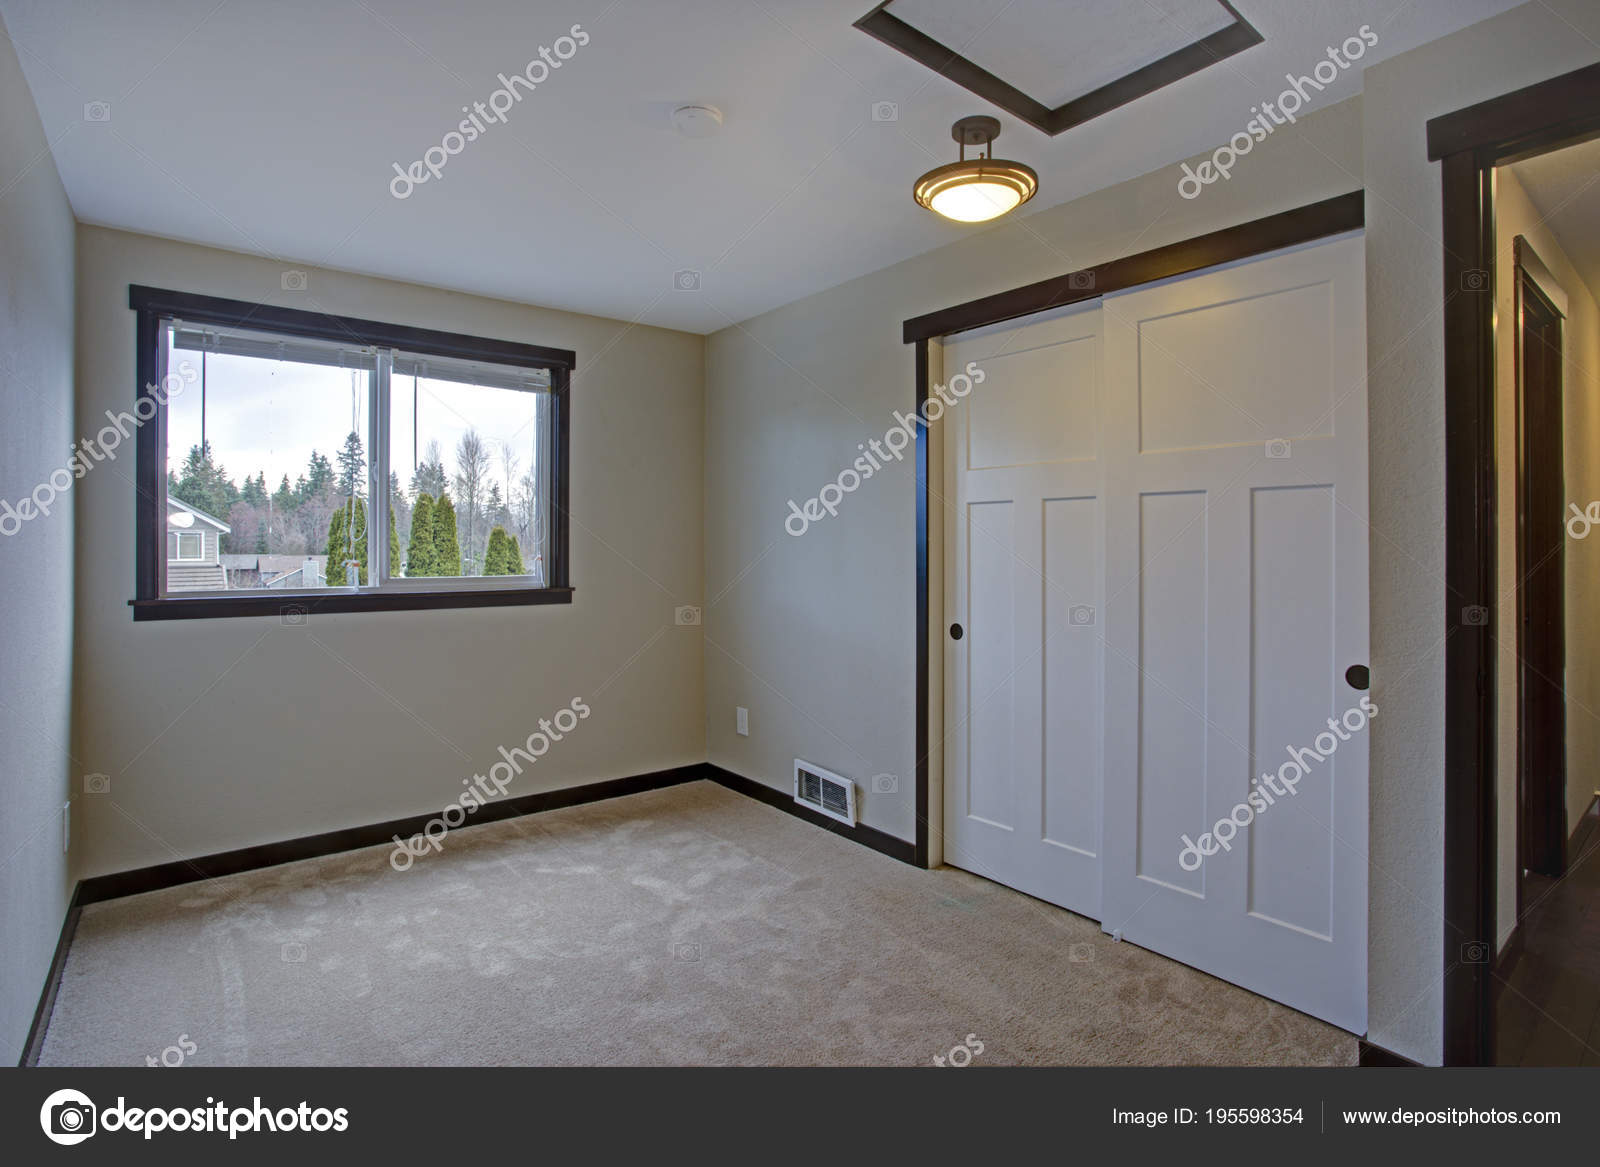 Small Empty Bedroom With Built In Closet Stock Photo C Alabn